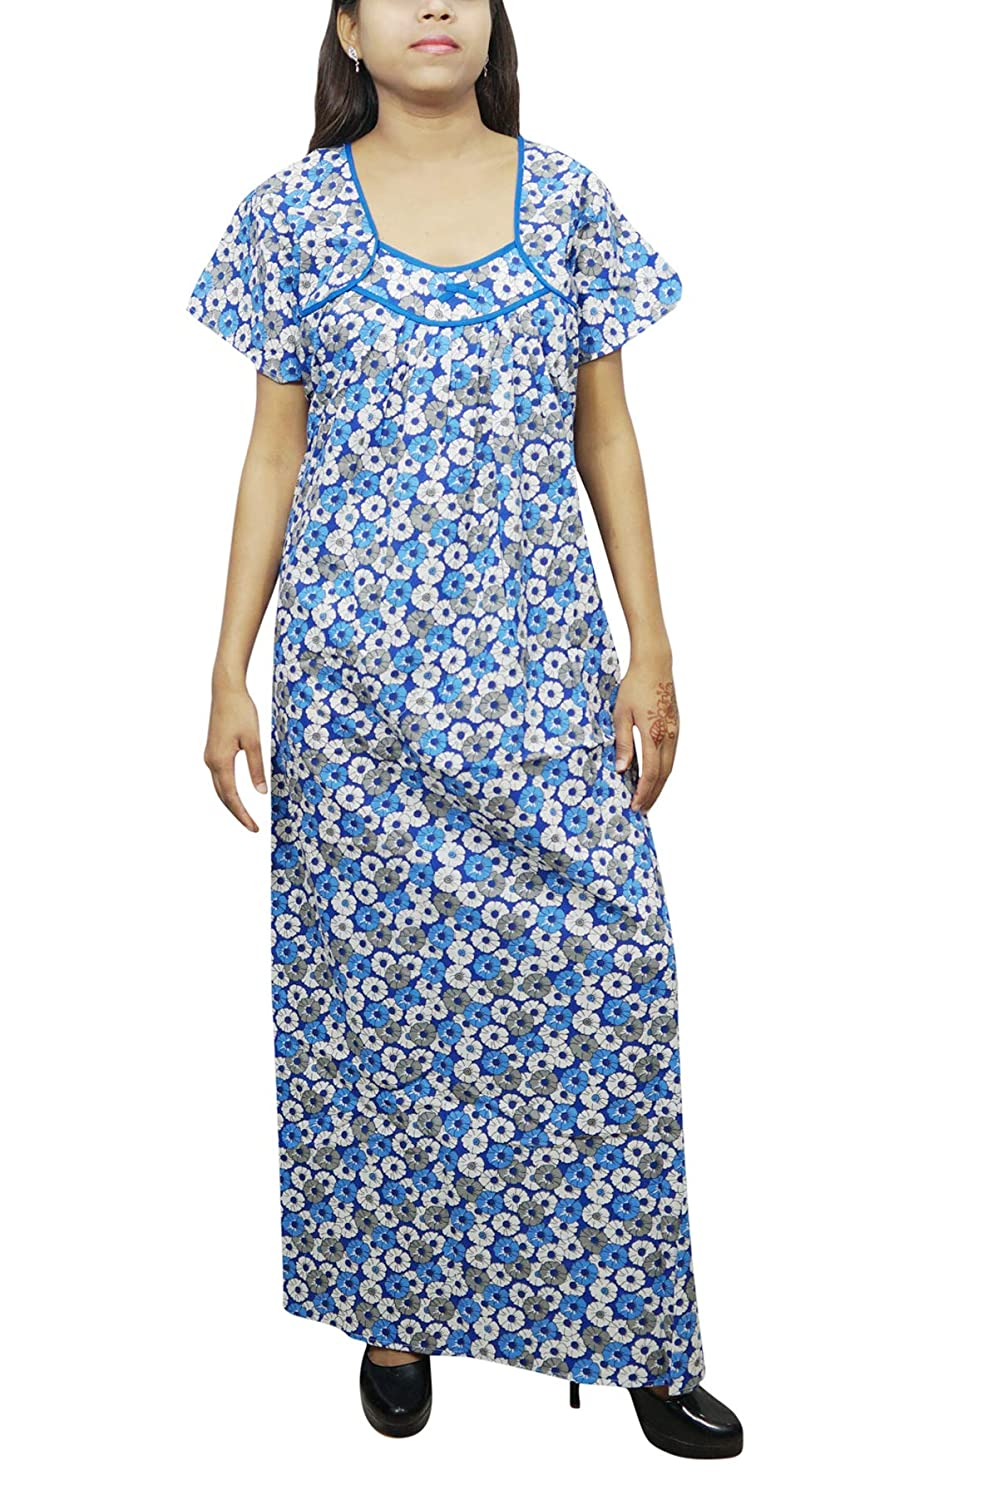 Indiatrendzs Women Cotton Nighty Floral Printed Loose Fit Comfy Nightgown  Maxi Dress (White Blue)  Amazon.in  Clothing   Accessories a49c91ac9